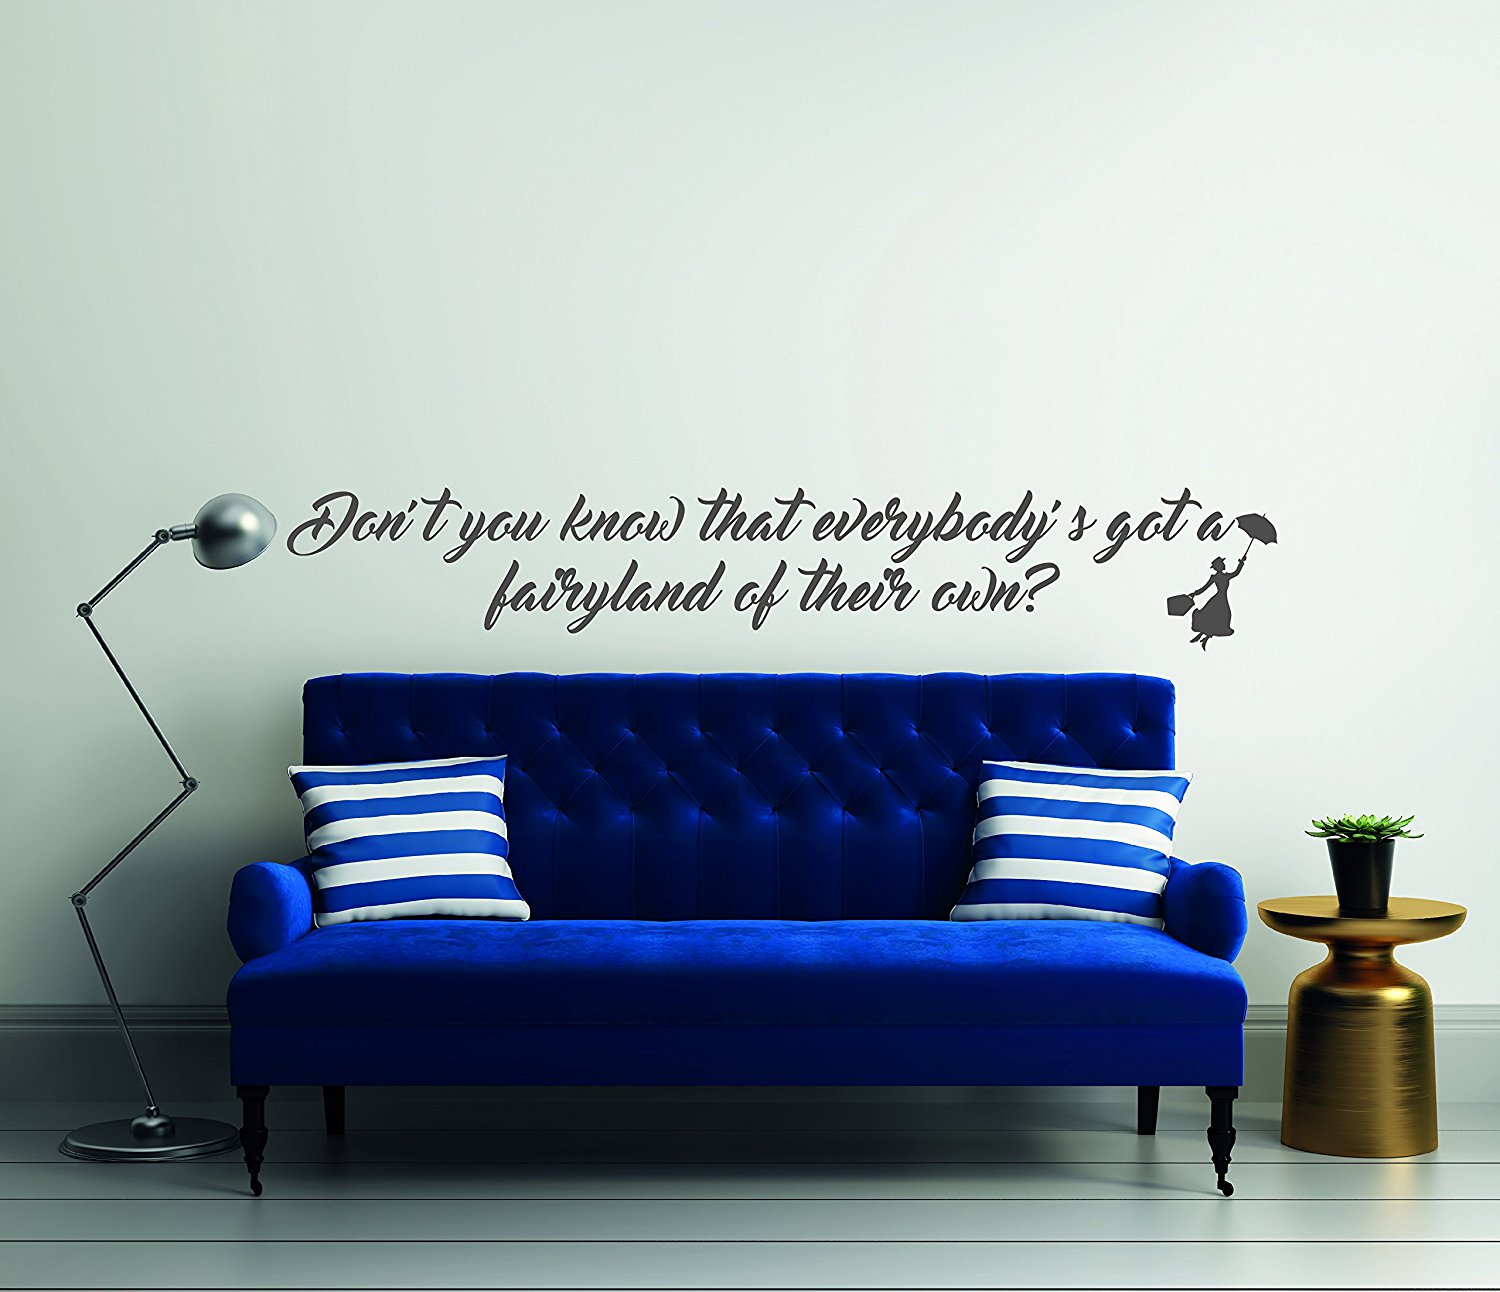 Quotes On Sofa Cheap Quotes For Living Room Find Quotes For Living Room Deals On